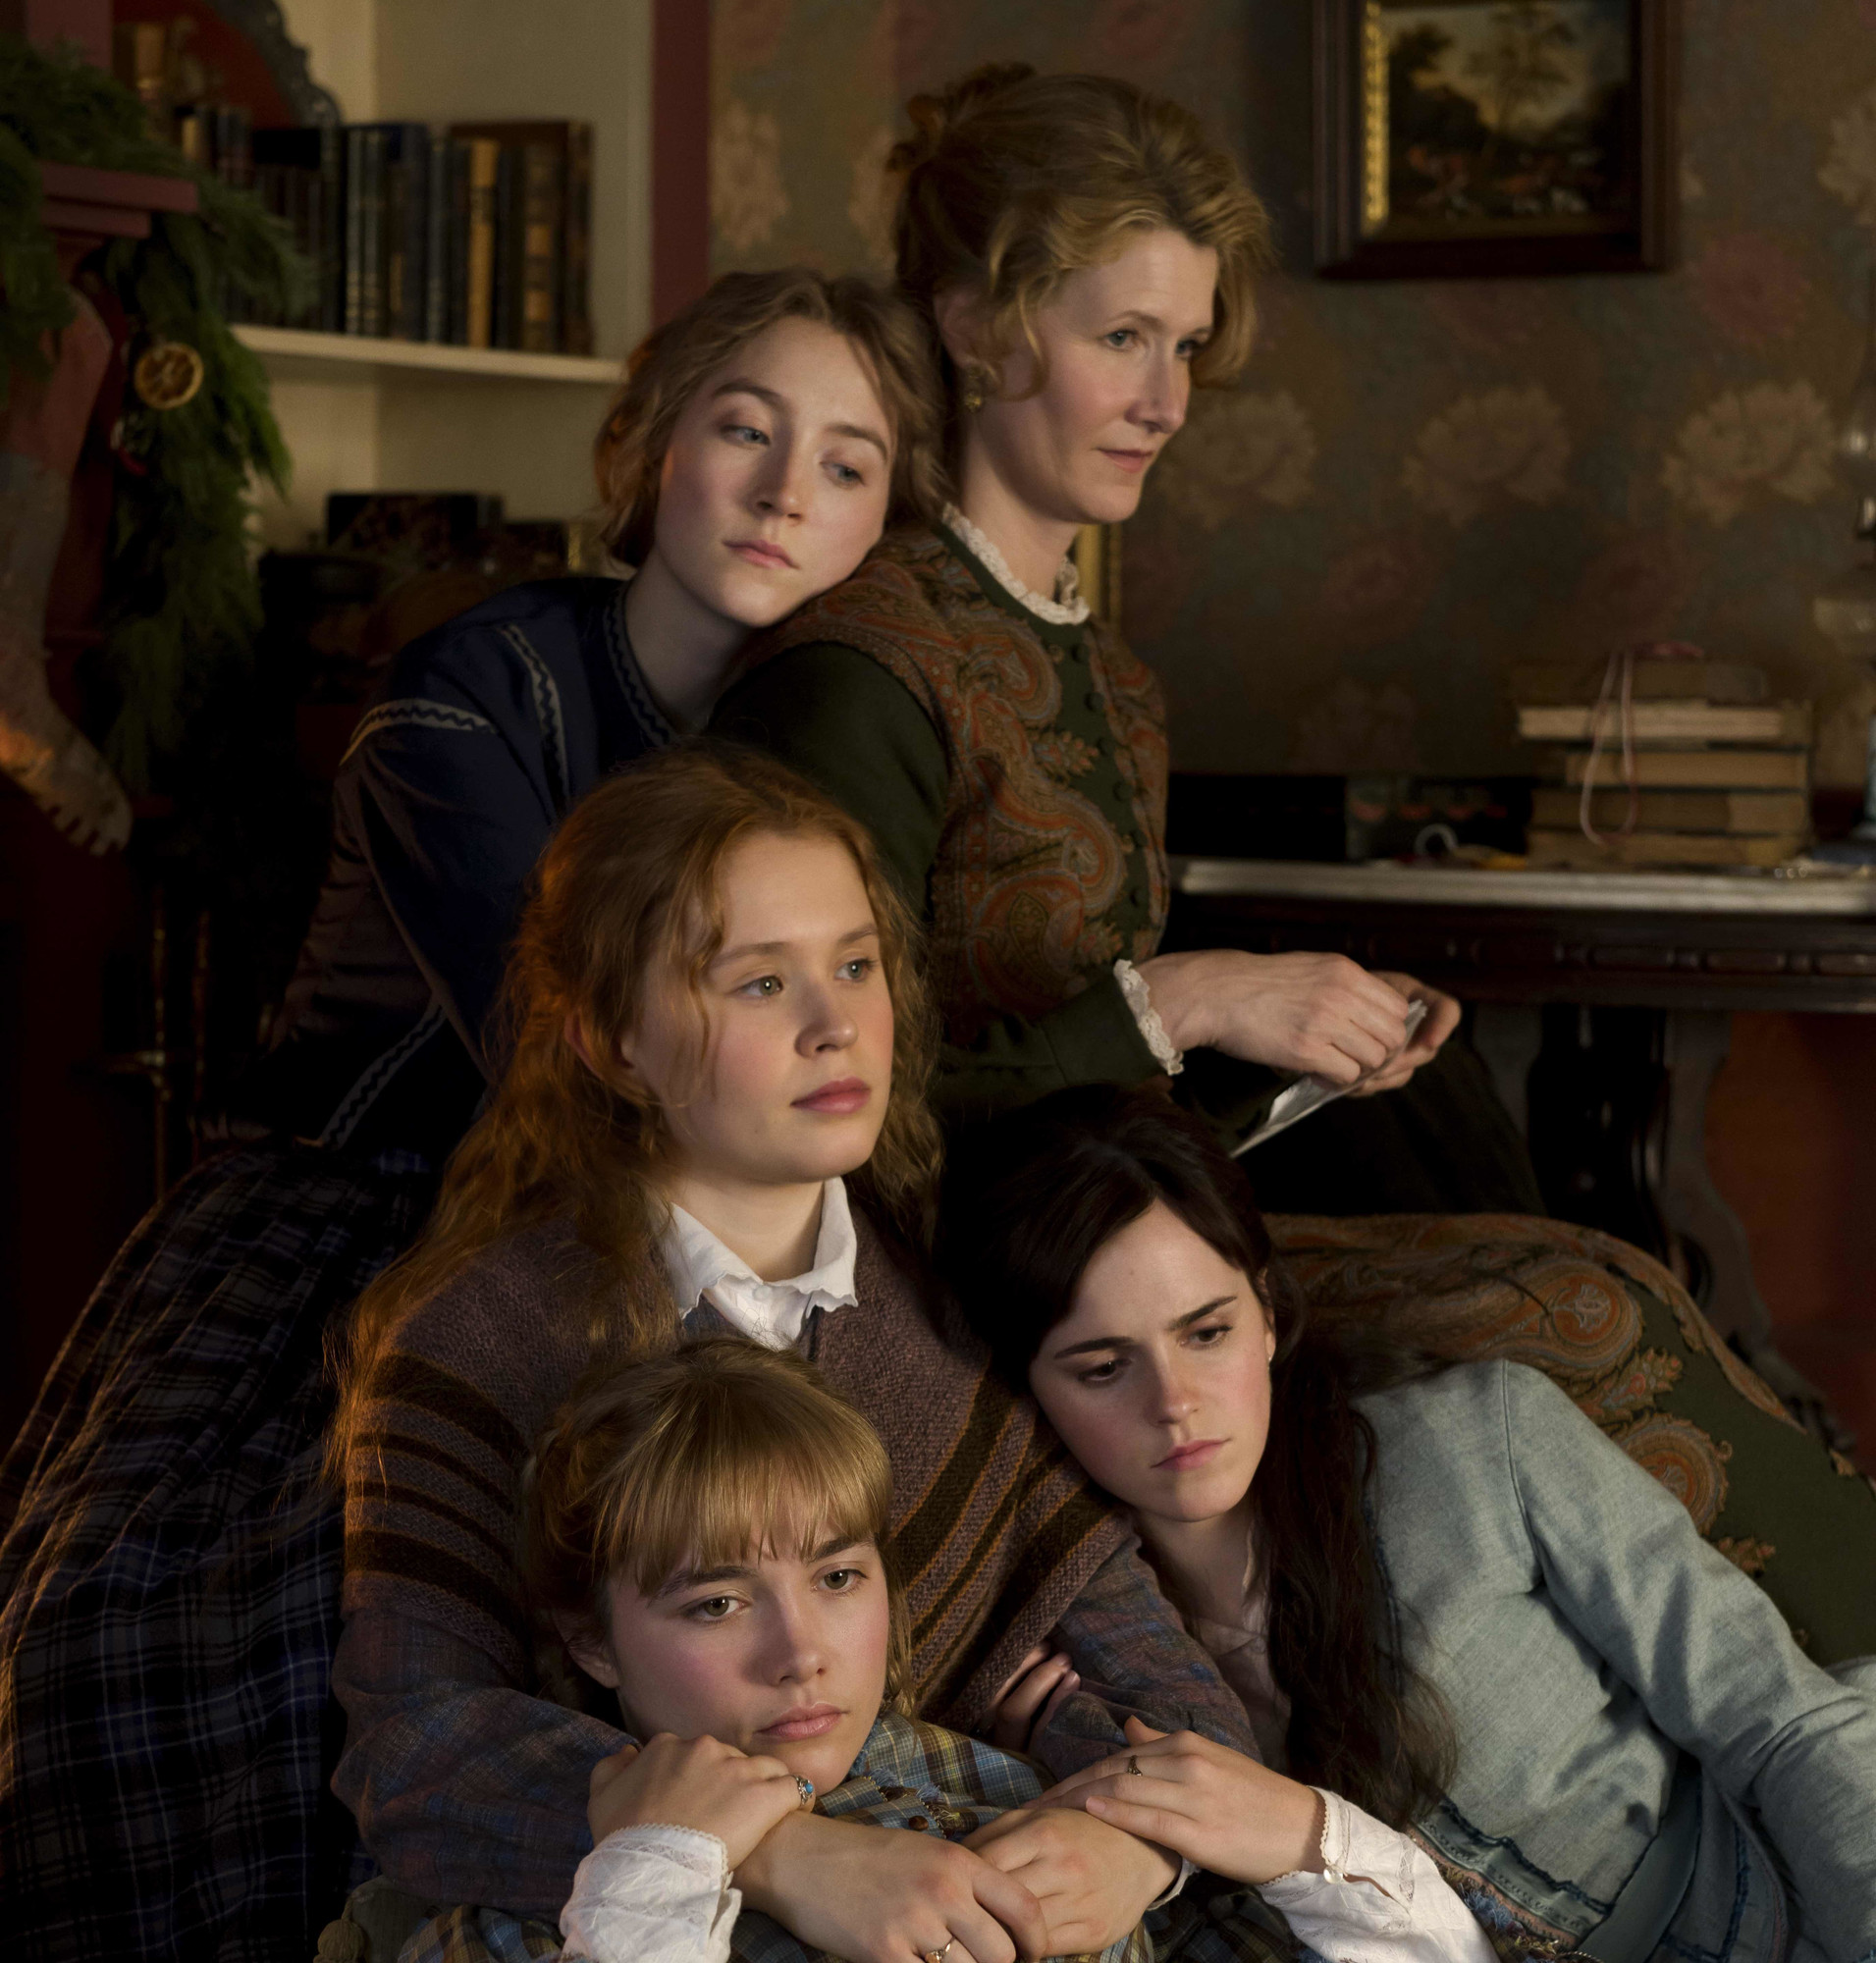 Little Women. 2019. Directed by Greta Gerwig | MoMA